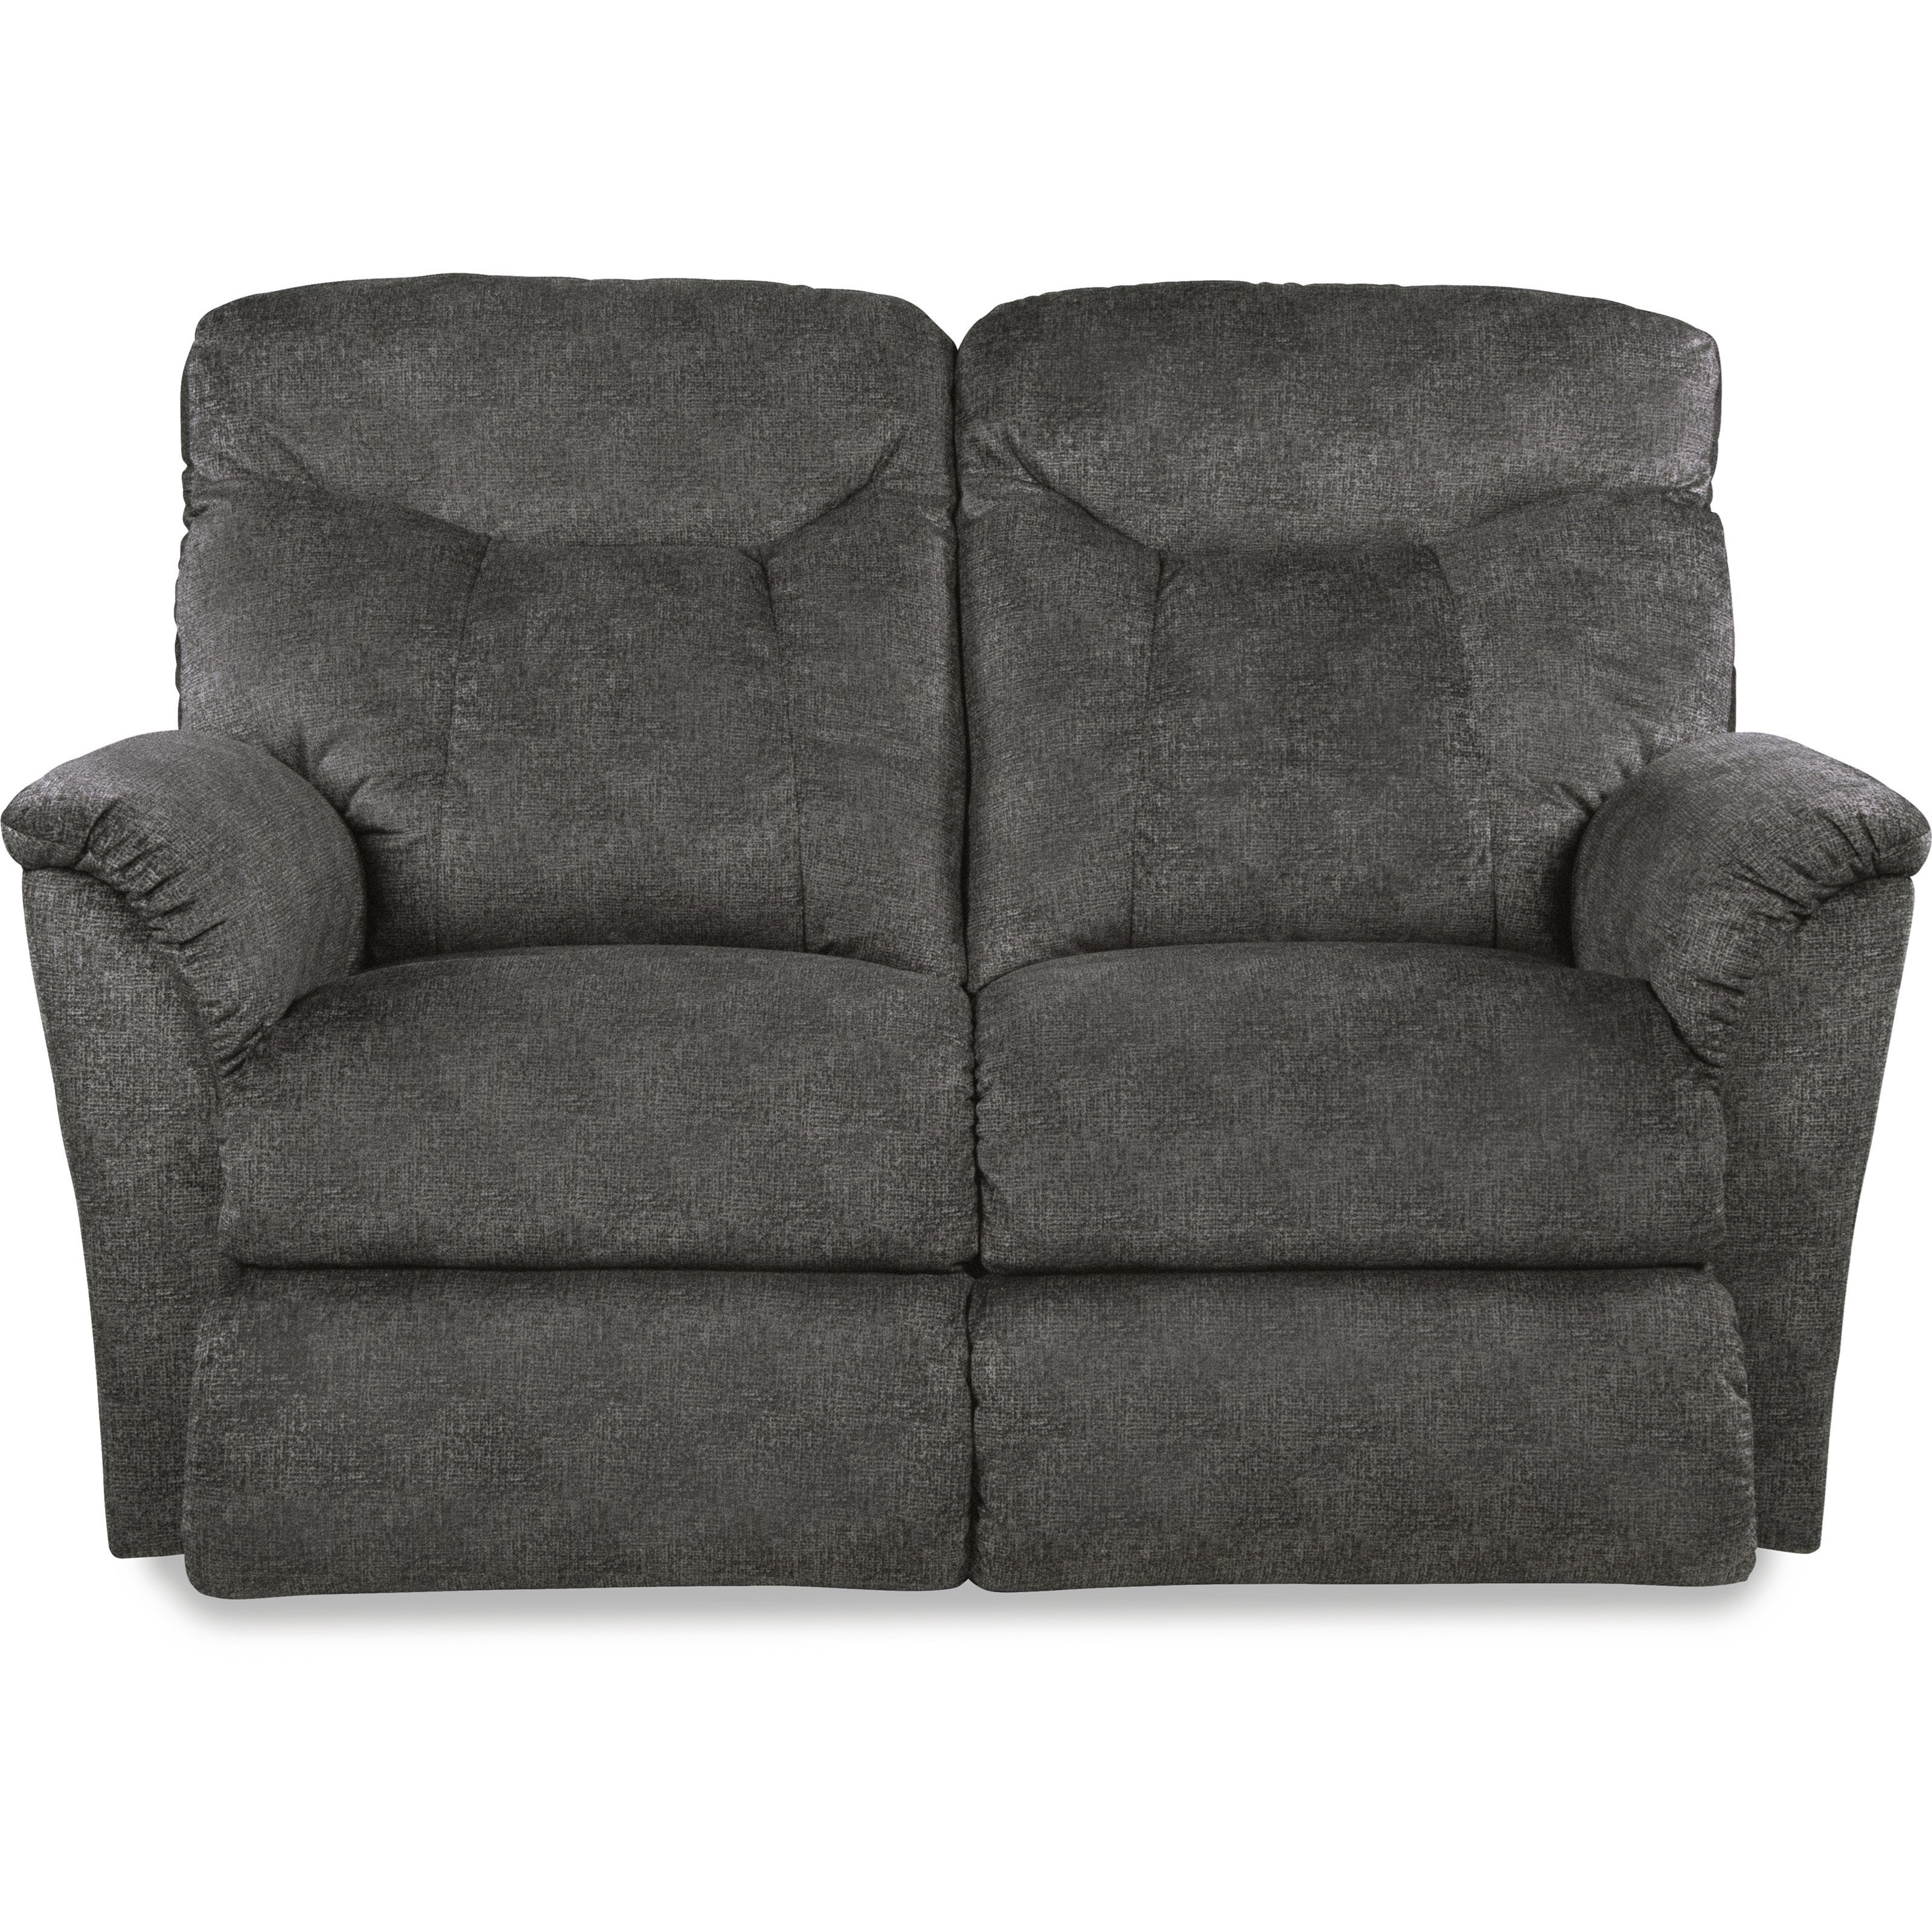 Loveseat Shown May Not Represent Exact Features Indicated  sc 1 st  Morris Furniture & La-Z-Boy Fortune Casual Reclining Loveseat - Morris Home ... islam-shia.org